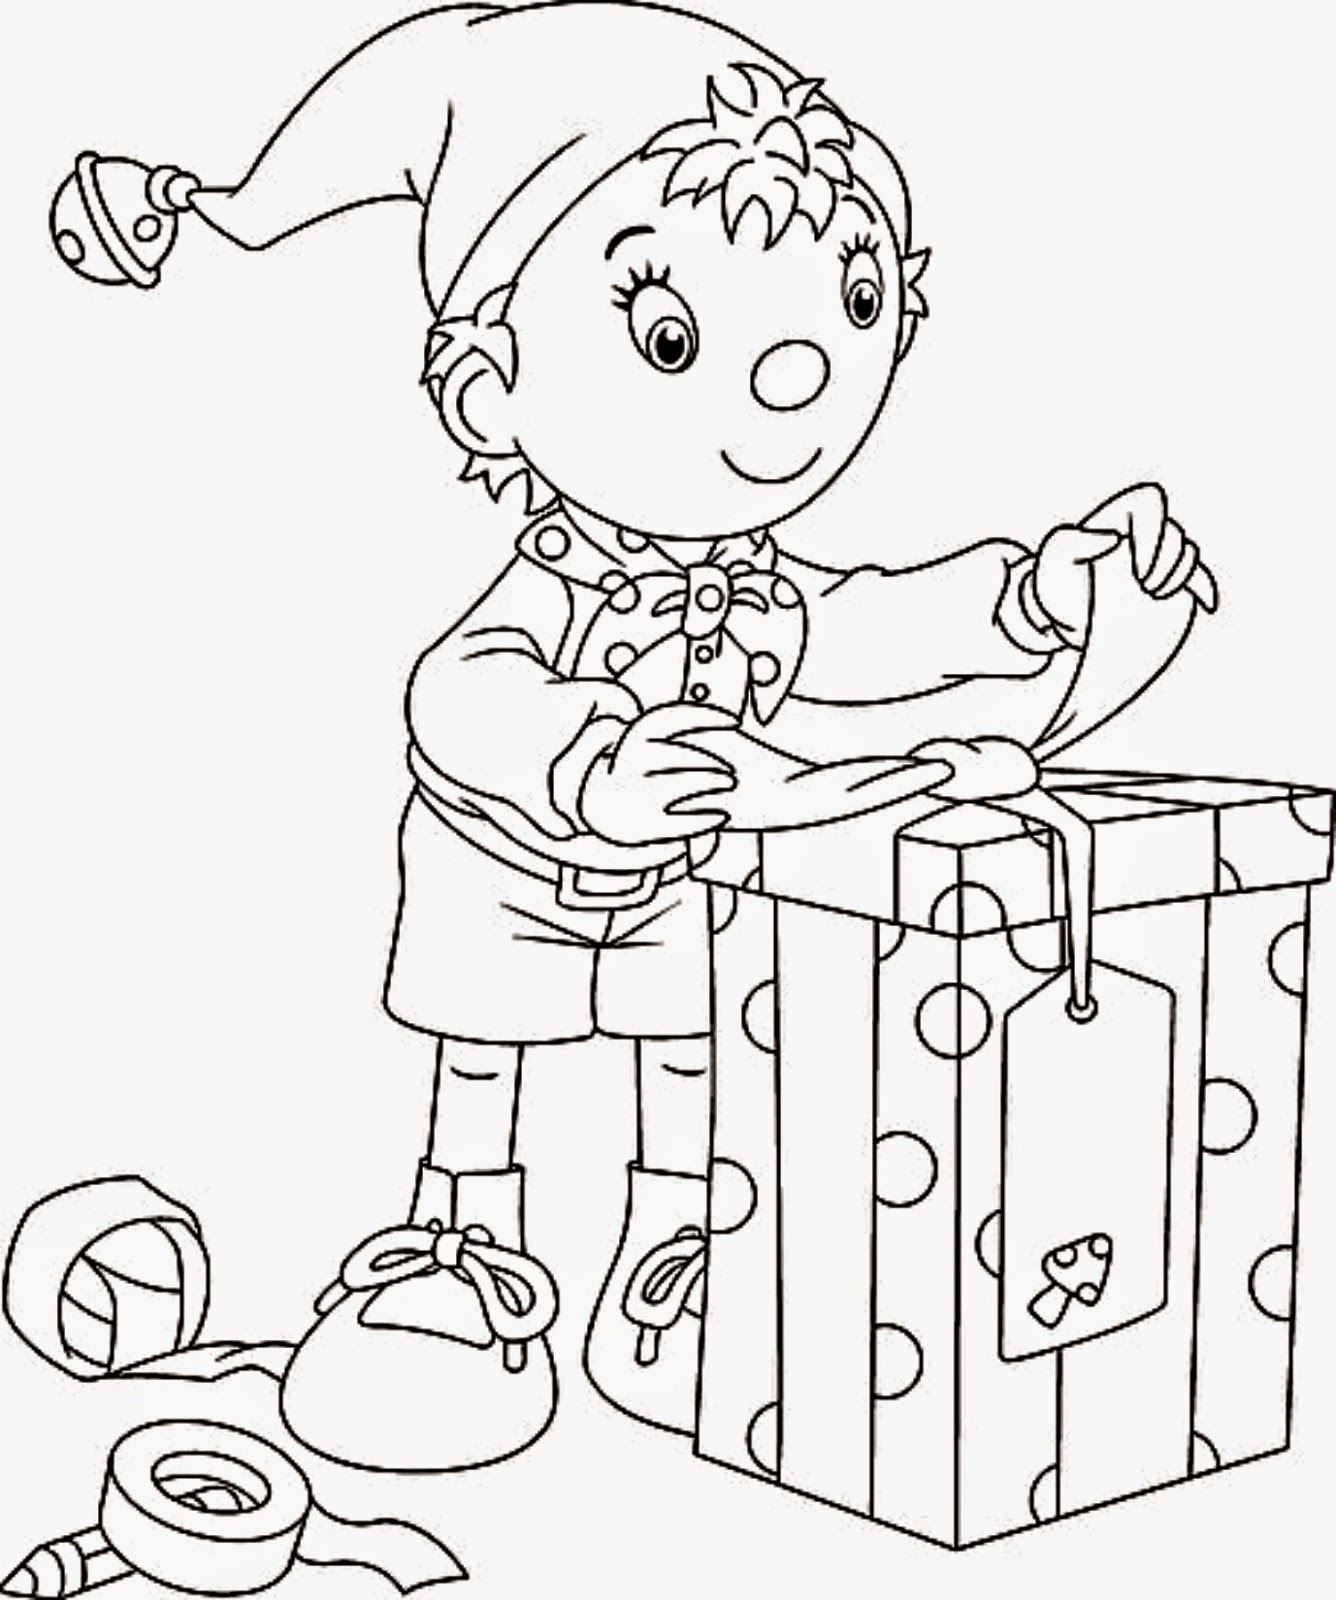 Christmas Elf Coloring Pages Coloring Pages Christmas Elf Coloring Pages Free And Printable